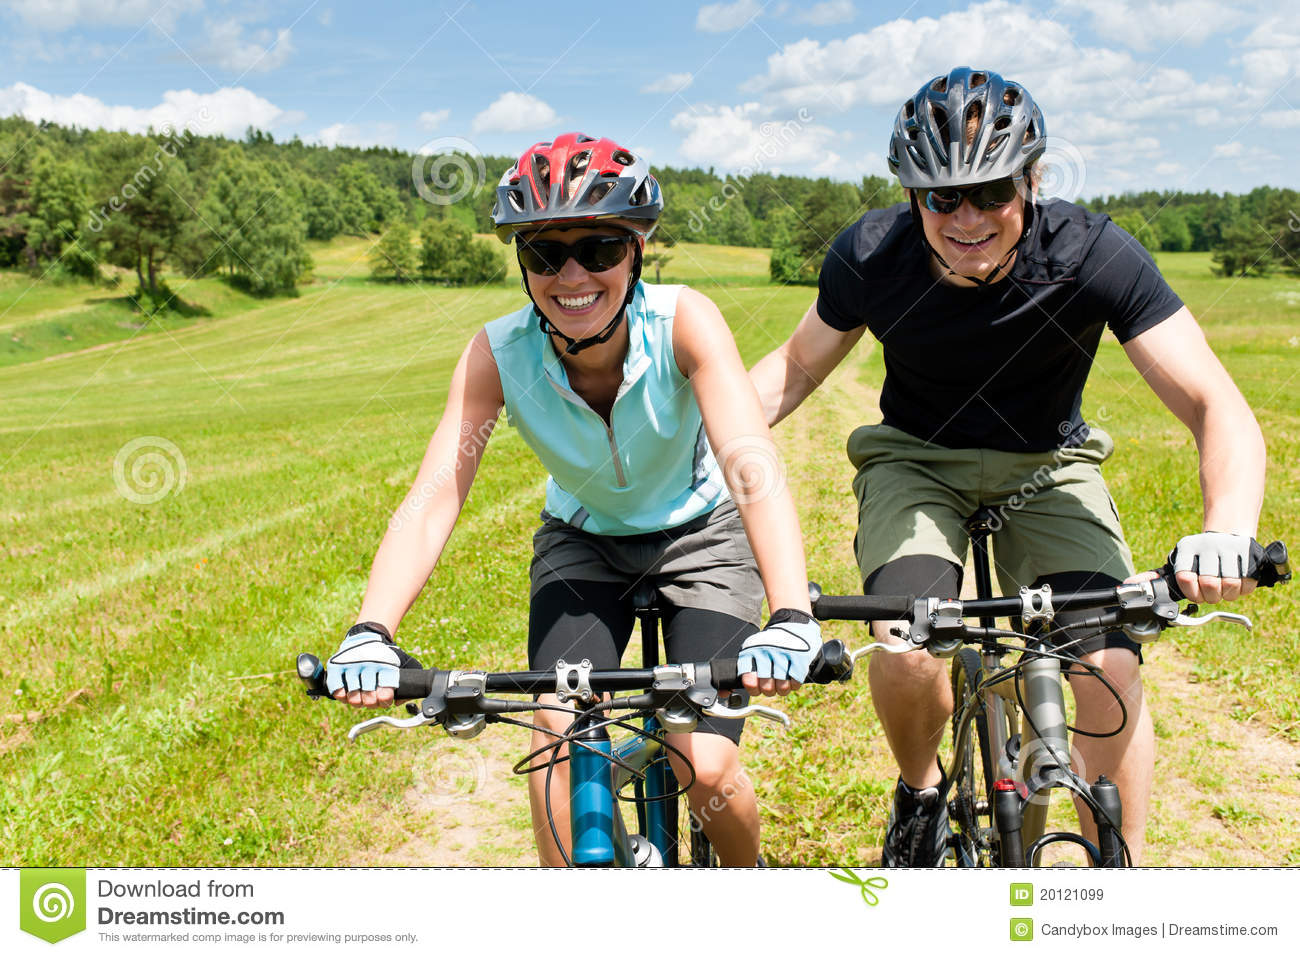 Dating a mountain biker girl